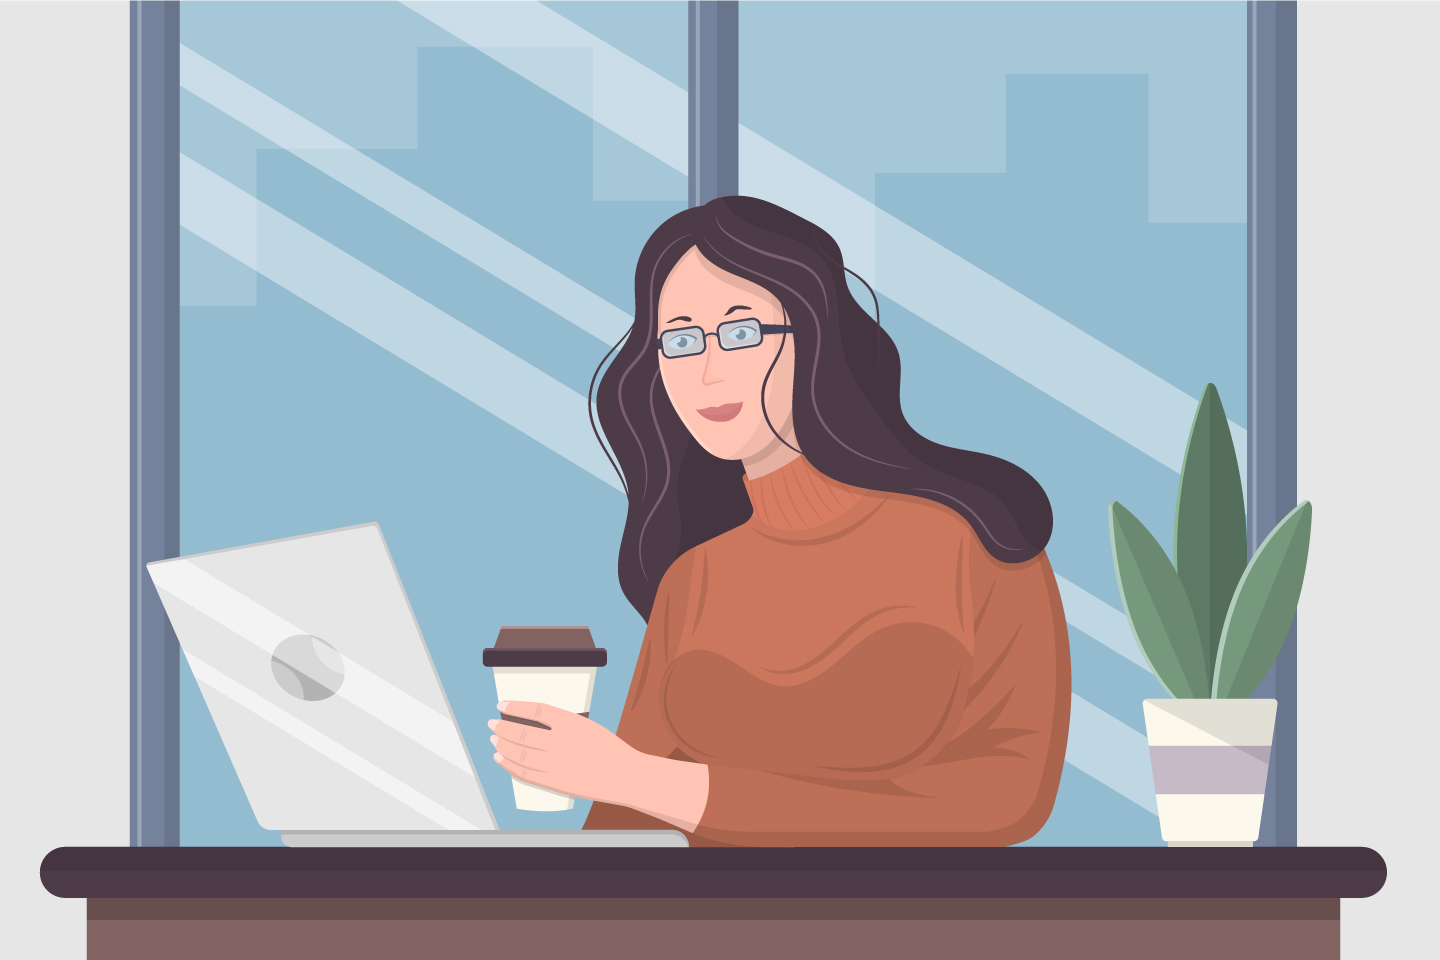 A Girl Sits at aTable With a Cup of Coffee and a Laptop Flat Design